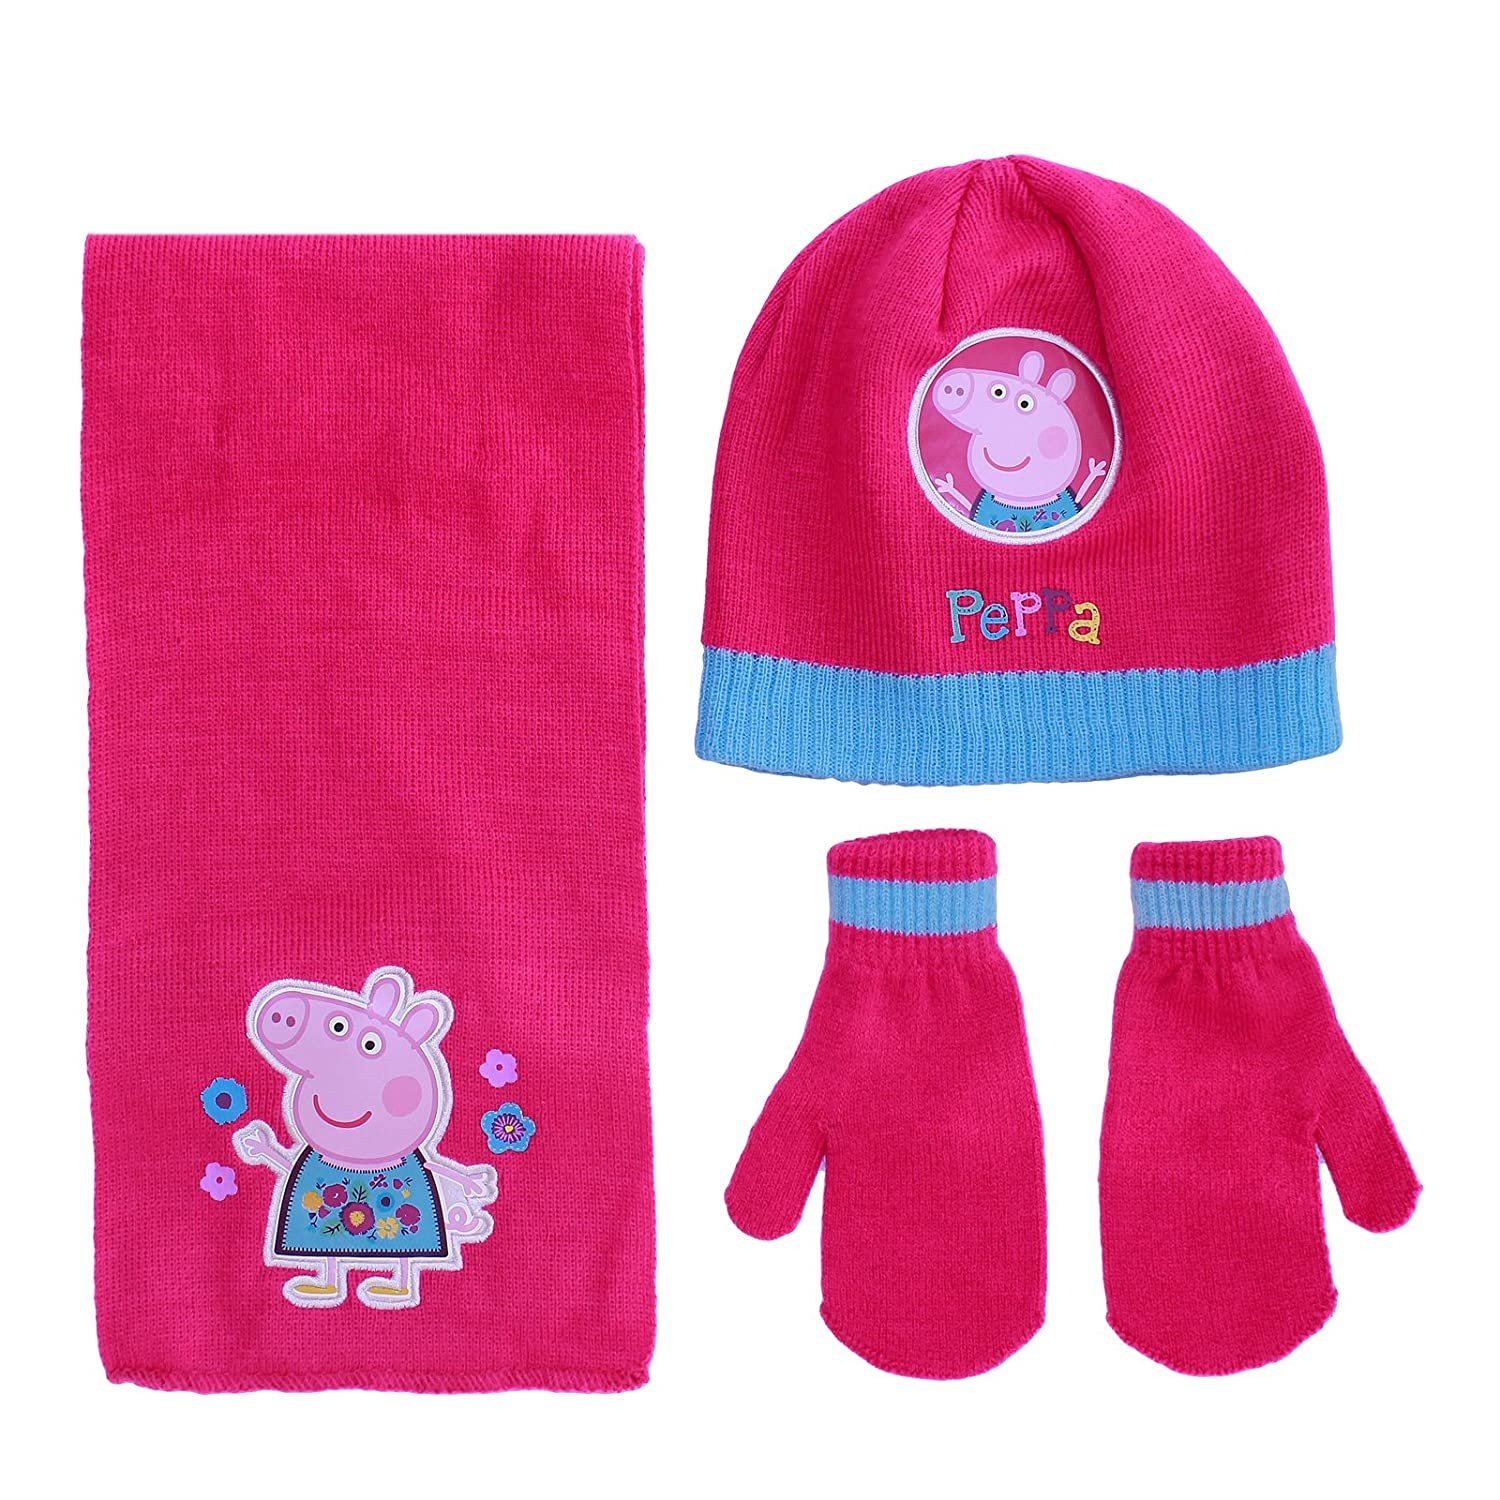 Official Licensed Girls Peppa Pig 3 Piece Set Hat Scarf Mittens Age 2-6 Years Pink Peppa